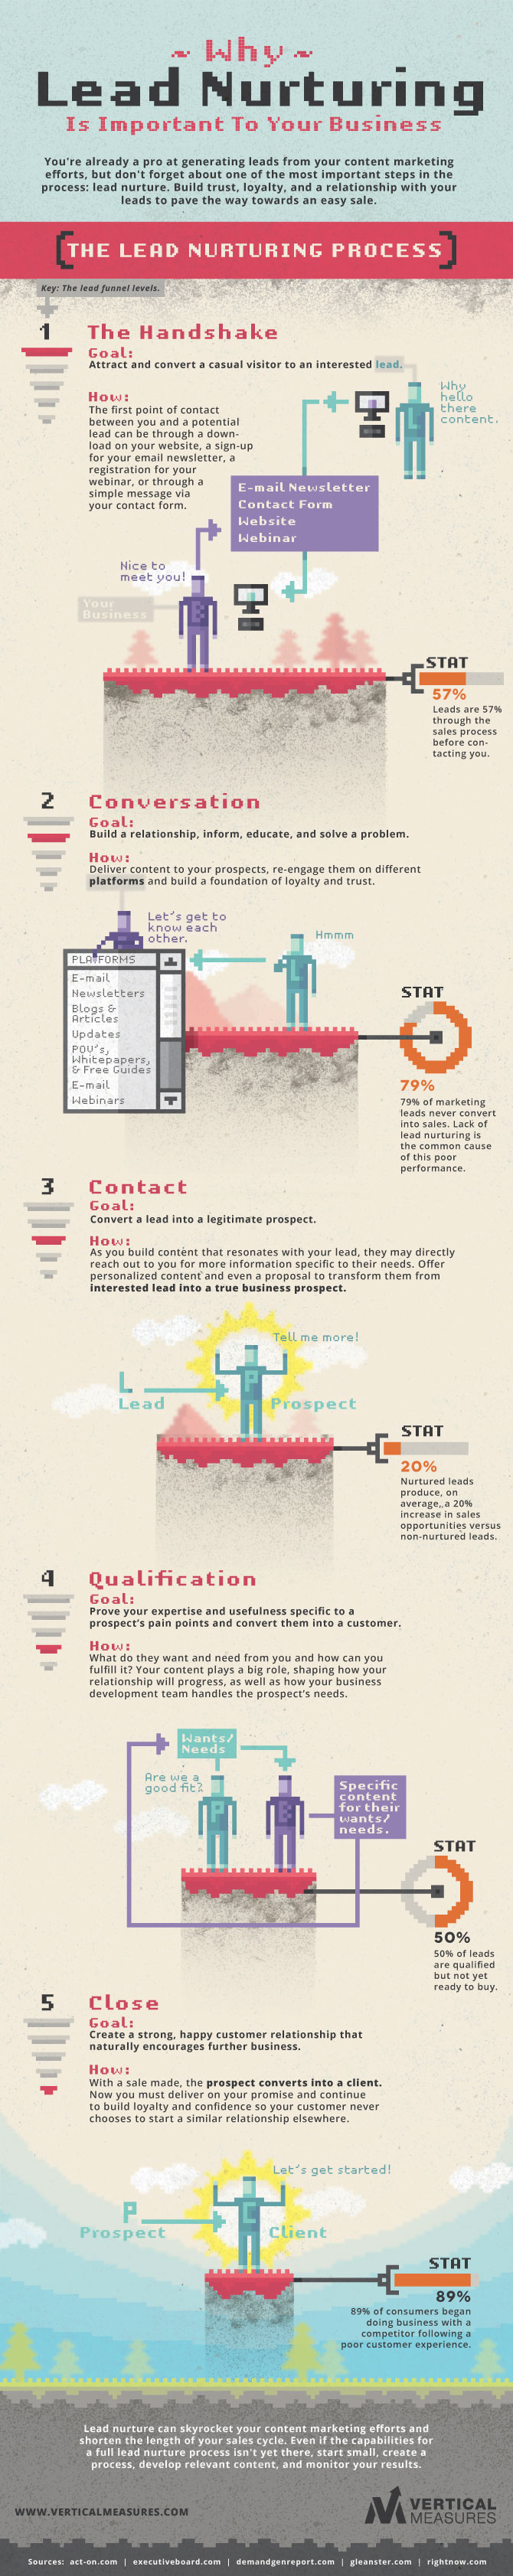 Why Lead Nurturing Is Important To Your Business - infographic